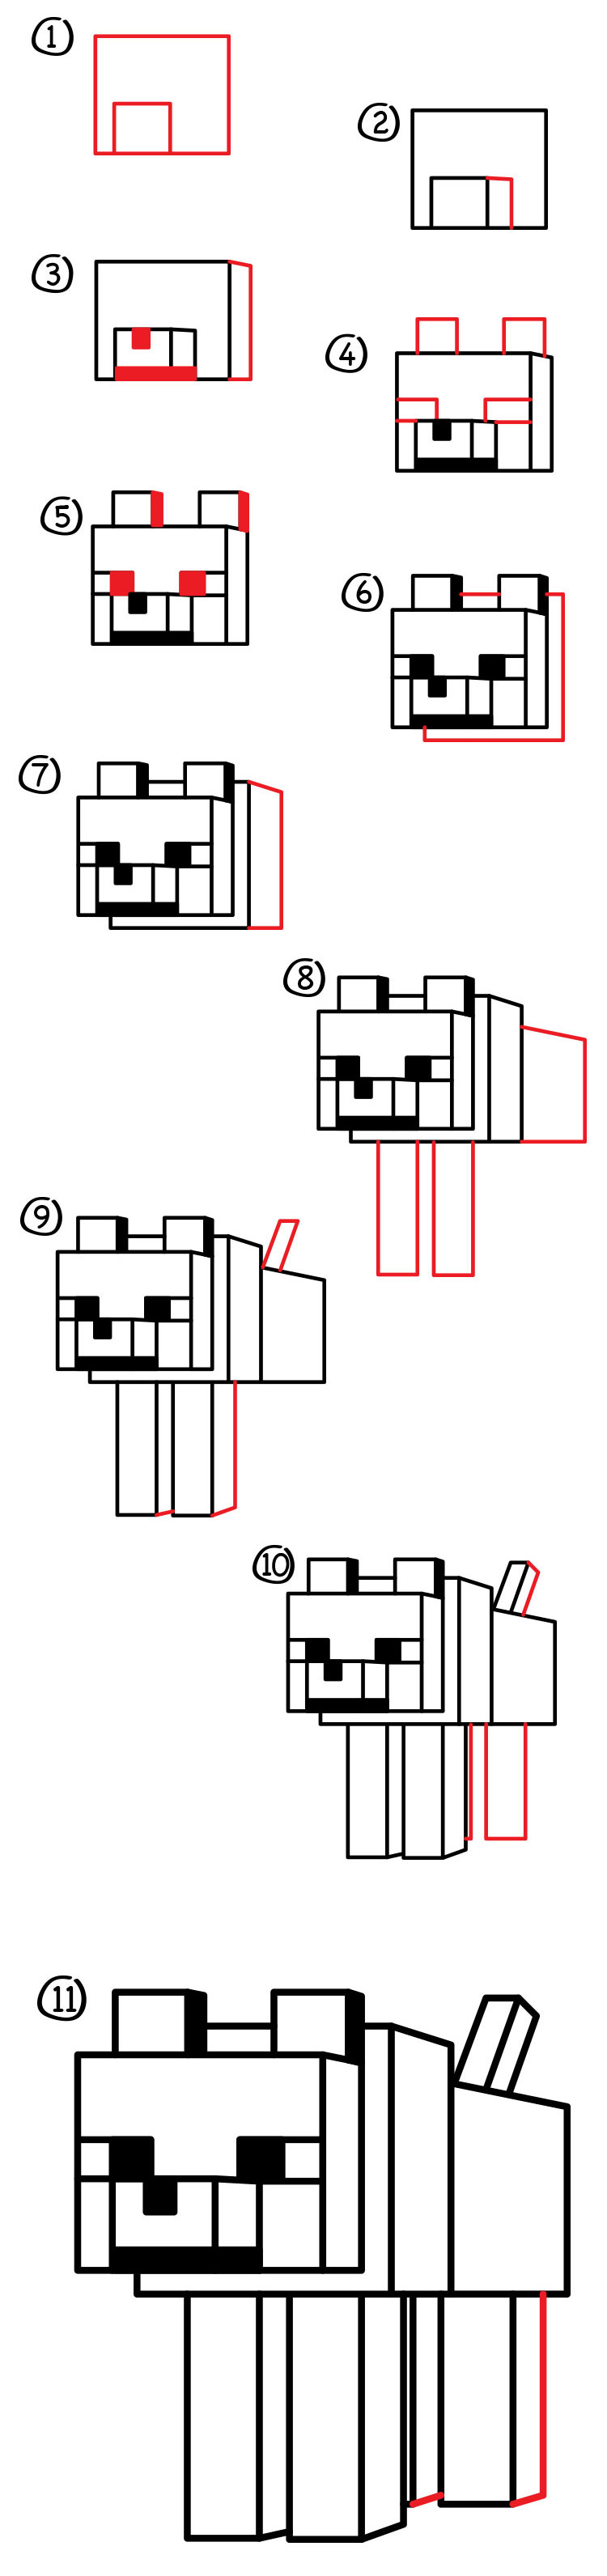 Image of: Cow Art For Kids Hub How To Draw Minecraft Wolf dog Art For Kids Hub